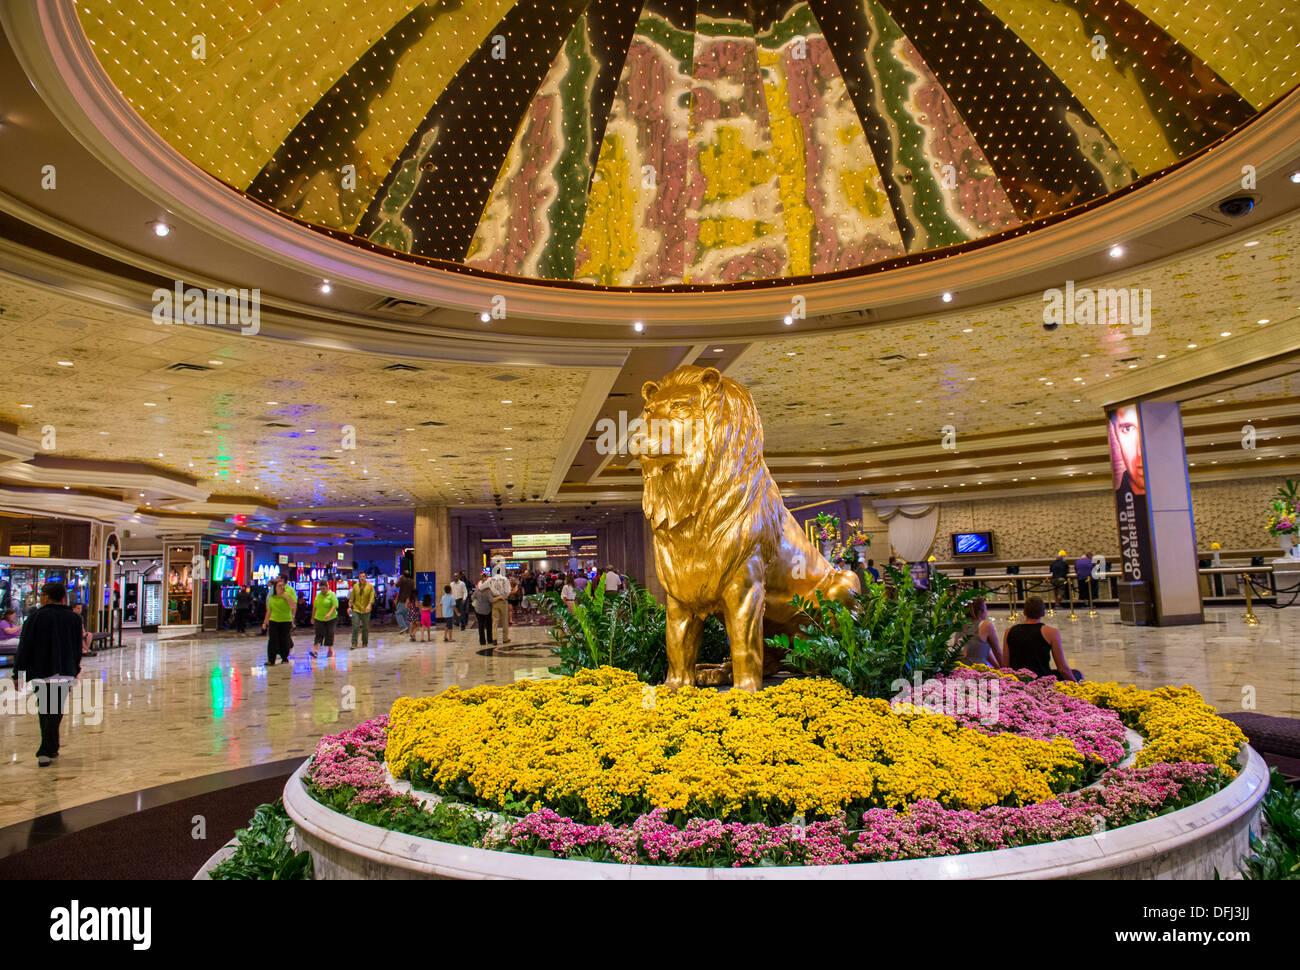 The Interior Of Mgm Hotel And Casino In Las Vegas Stock Photo Alamy